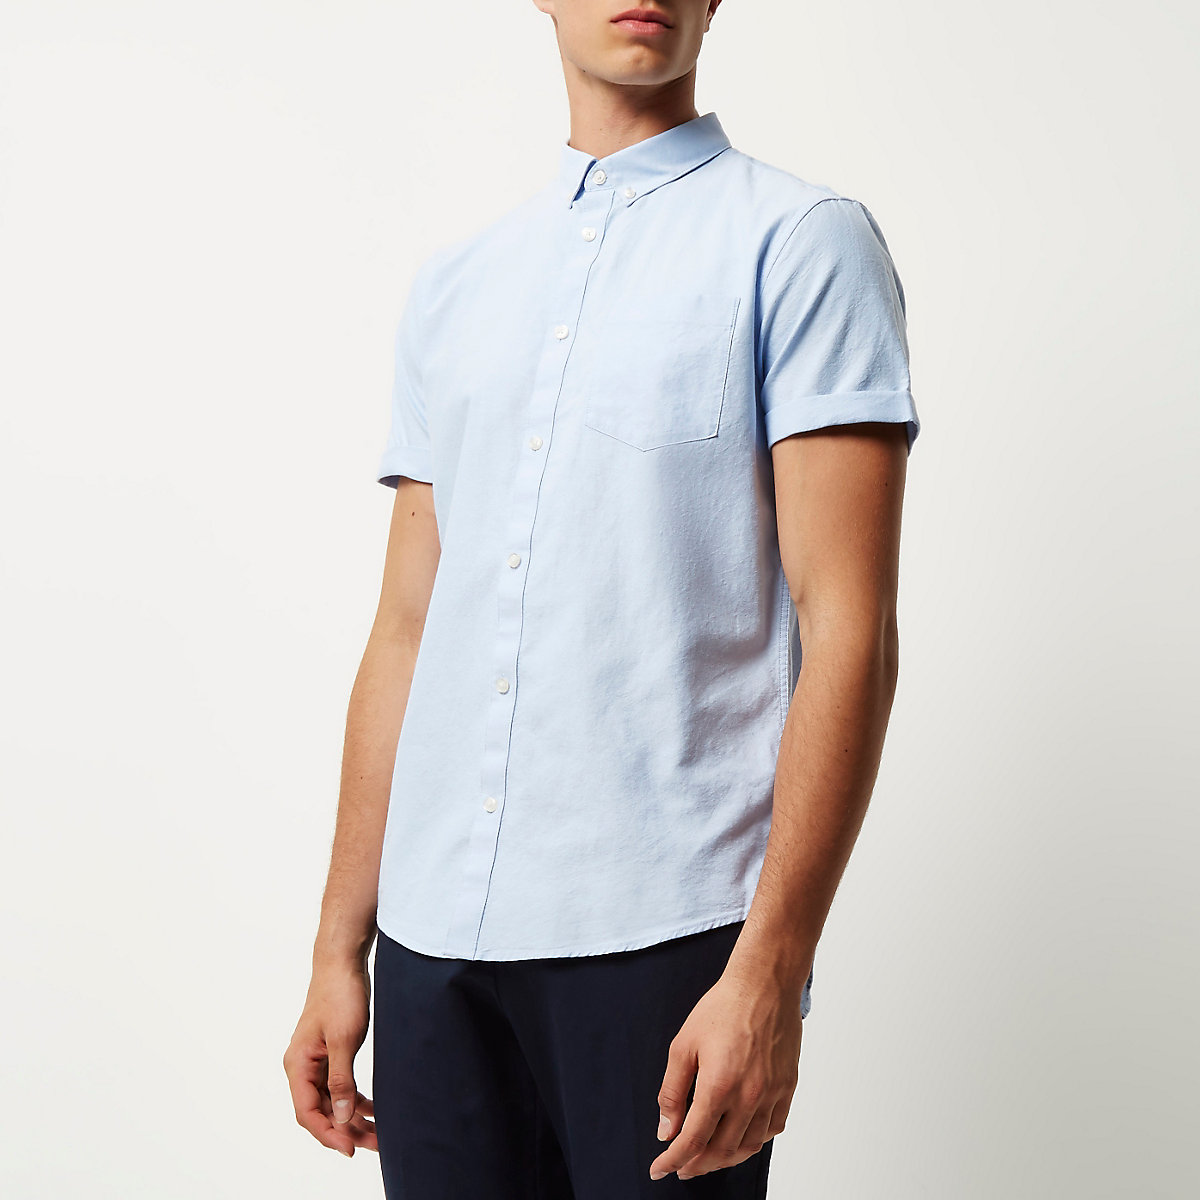 Light blue short sleeve Oxford shirt